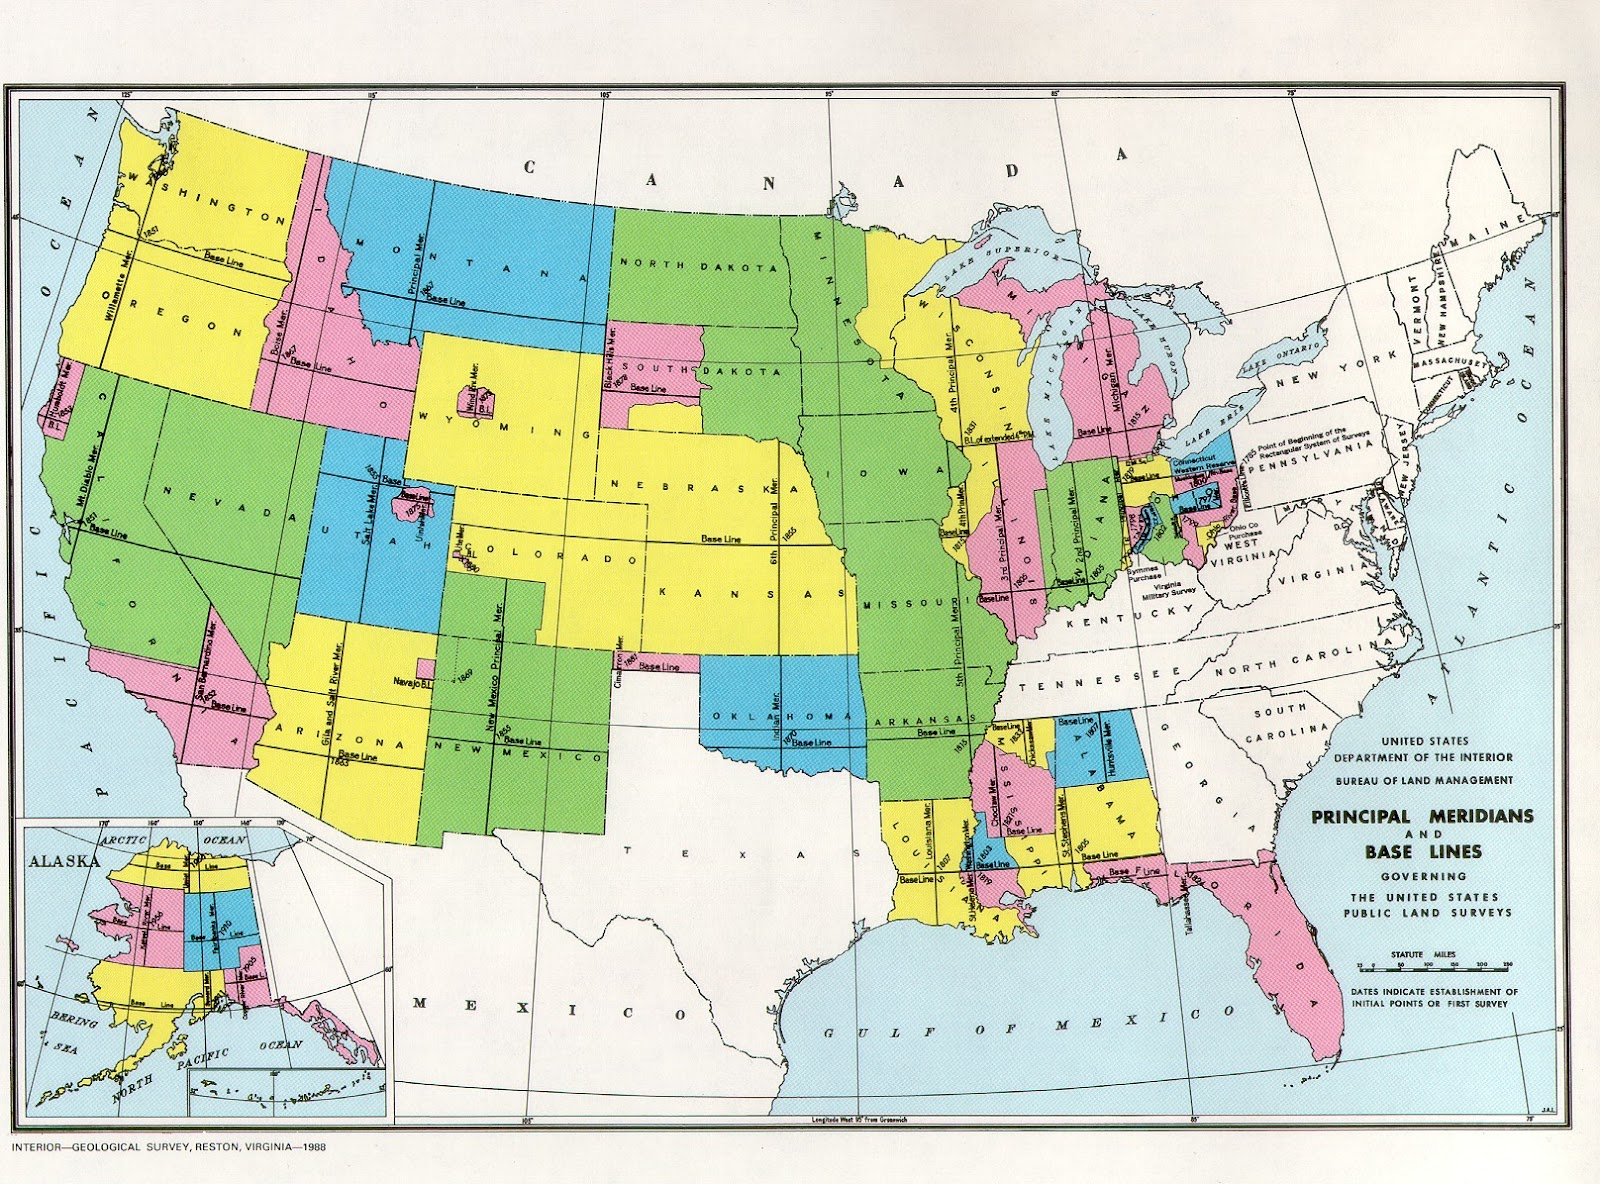 plss maps were the first maps to document the united states land partitions they were mostly used to depict the government land that would be